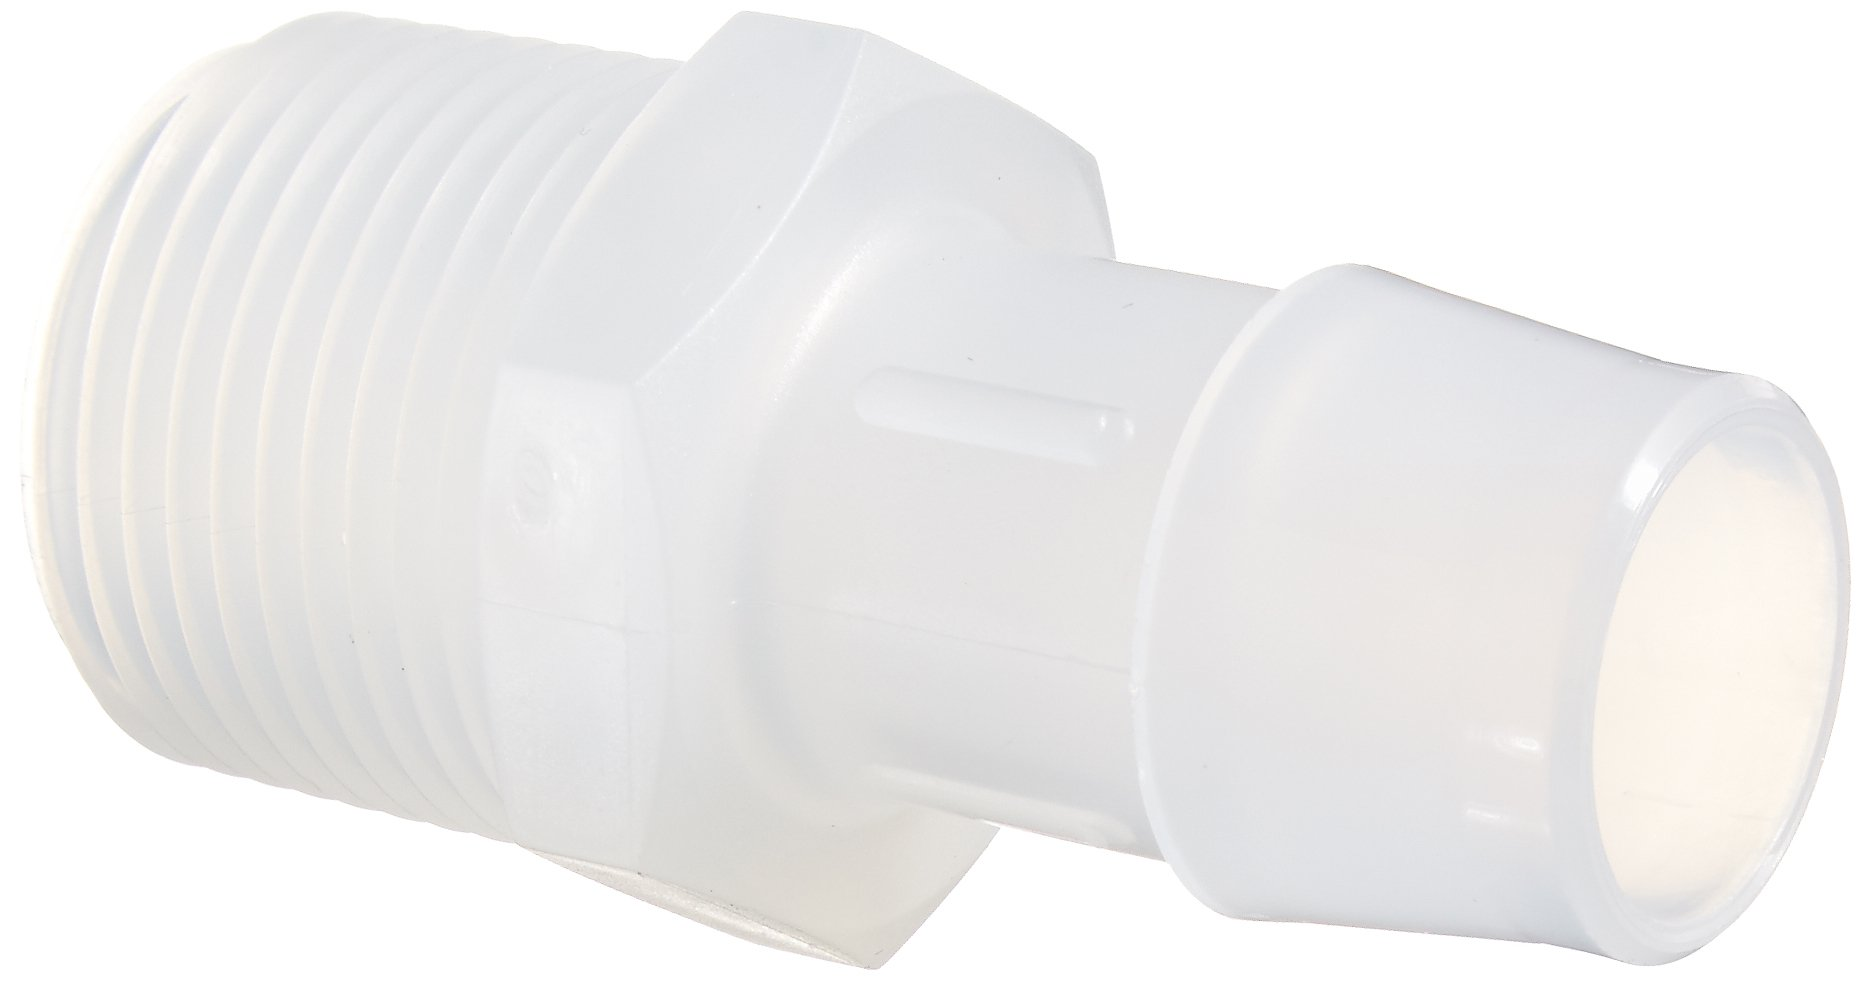 Eldon James A12-12PP Non-Animal Derived Polypropylene Adapter Fitting, 3/4-14 NPT to 3/4'' Hose Barb (Pack of 10) by Eldon James